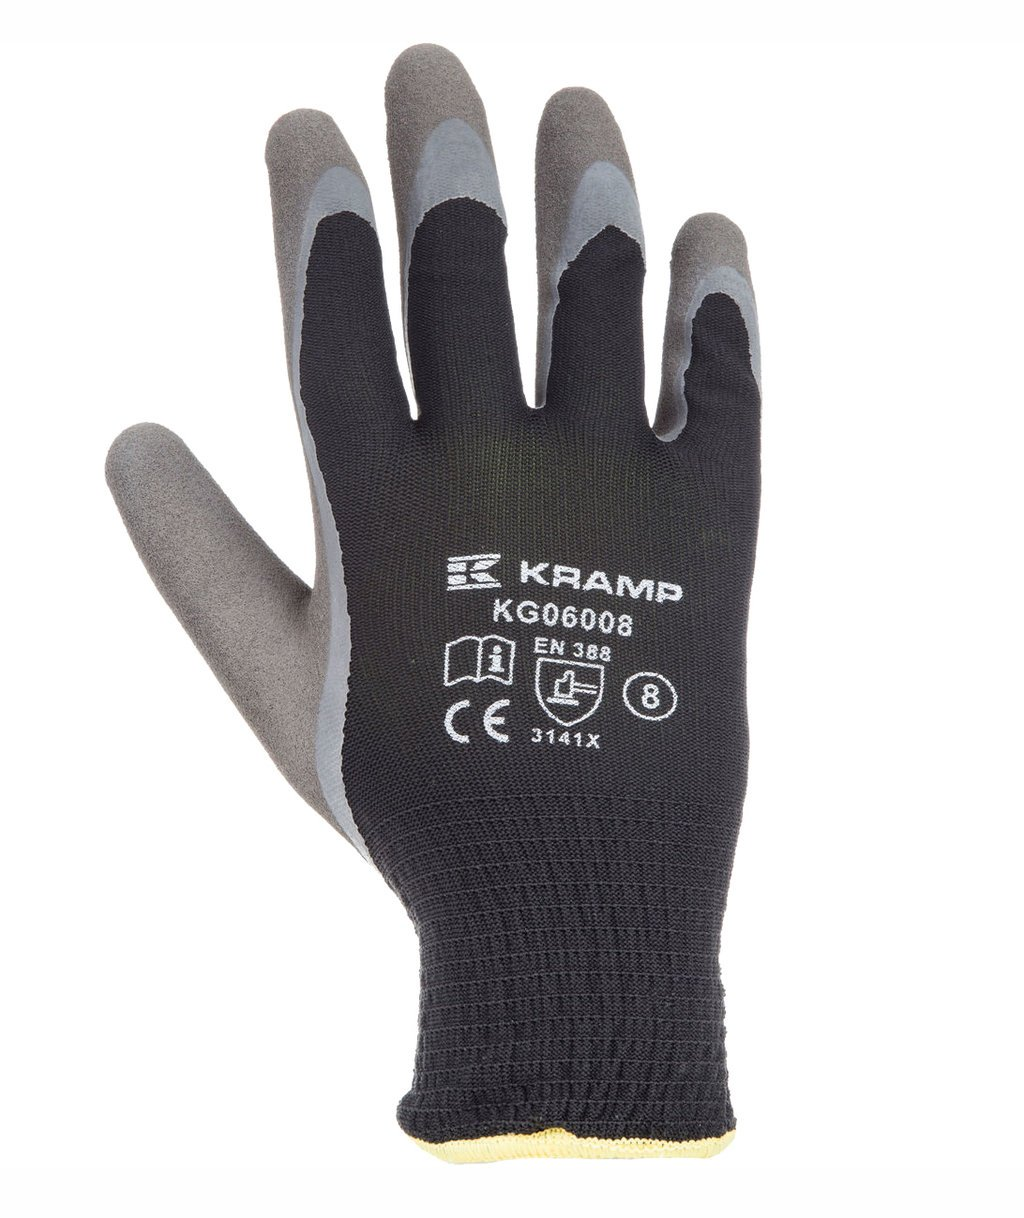 Kramp 6.008 latex dipped winter gloves, Black